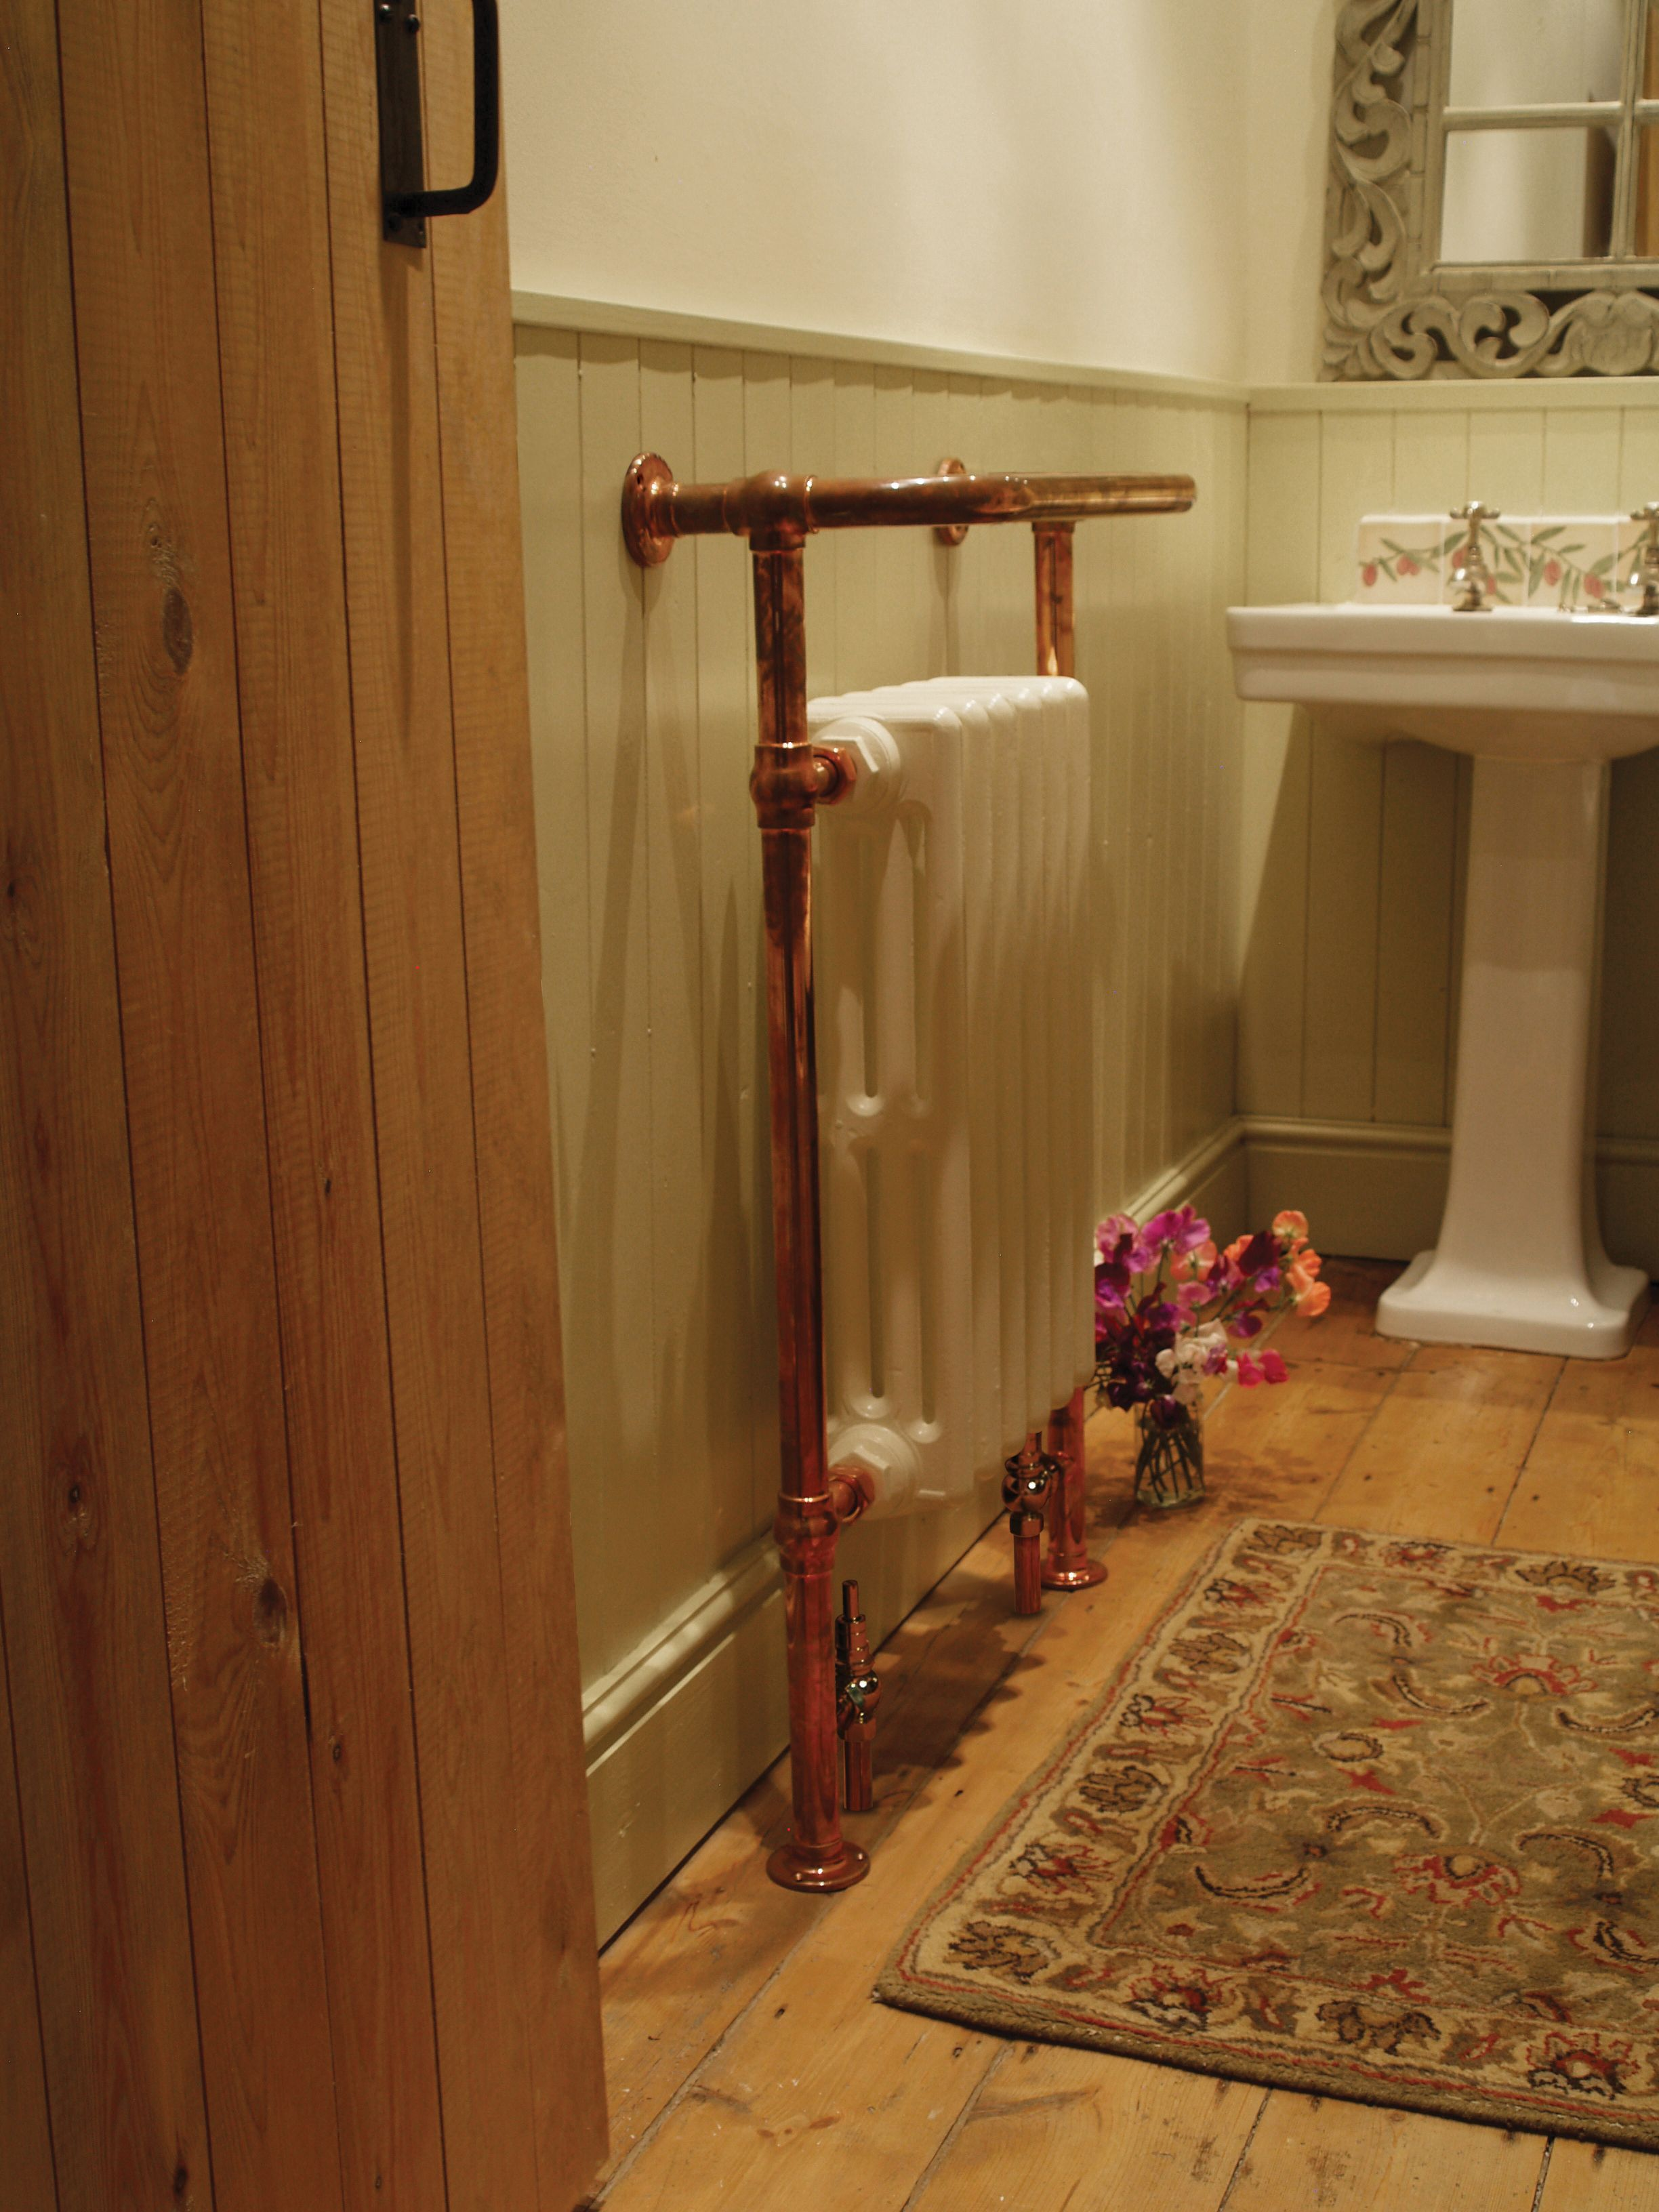 Carron Broughton Copper Bathroom Towel Rail is available to purchase from UKAA. You can all the office on 01543 222 923